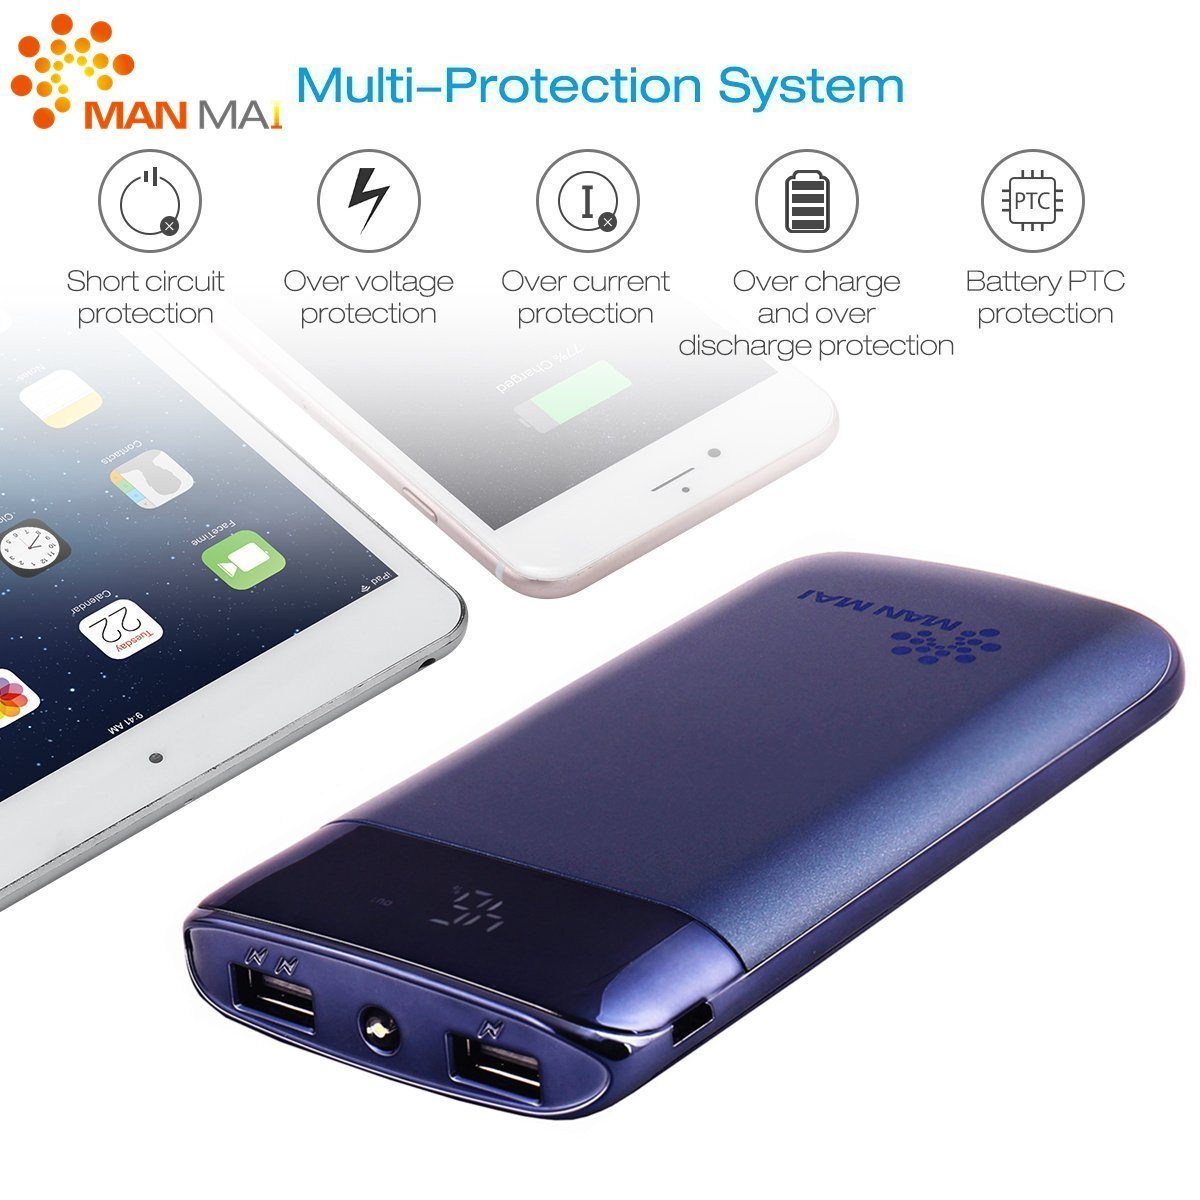 KUPPET 20000mAh Power Bank (Dual USB Port, 3.1A Total) External Portable Charger Battery Pack Portable Charger with LED Flashlight for iPhone 7, iPhone 8,iphone X,iPad Pro, Galaxy S8 Note8 and More by KUPPET (Image #4)